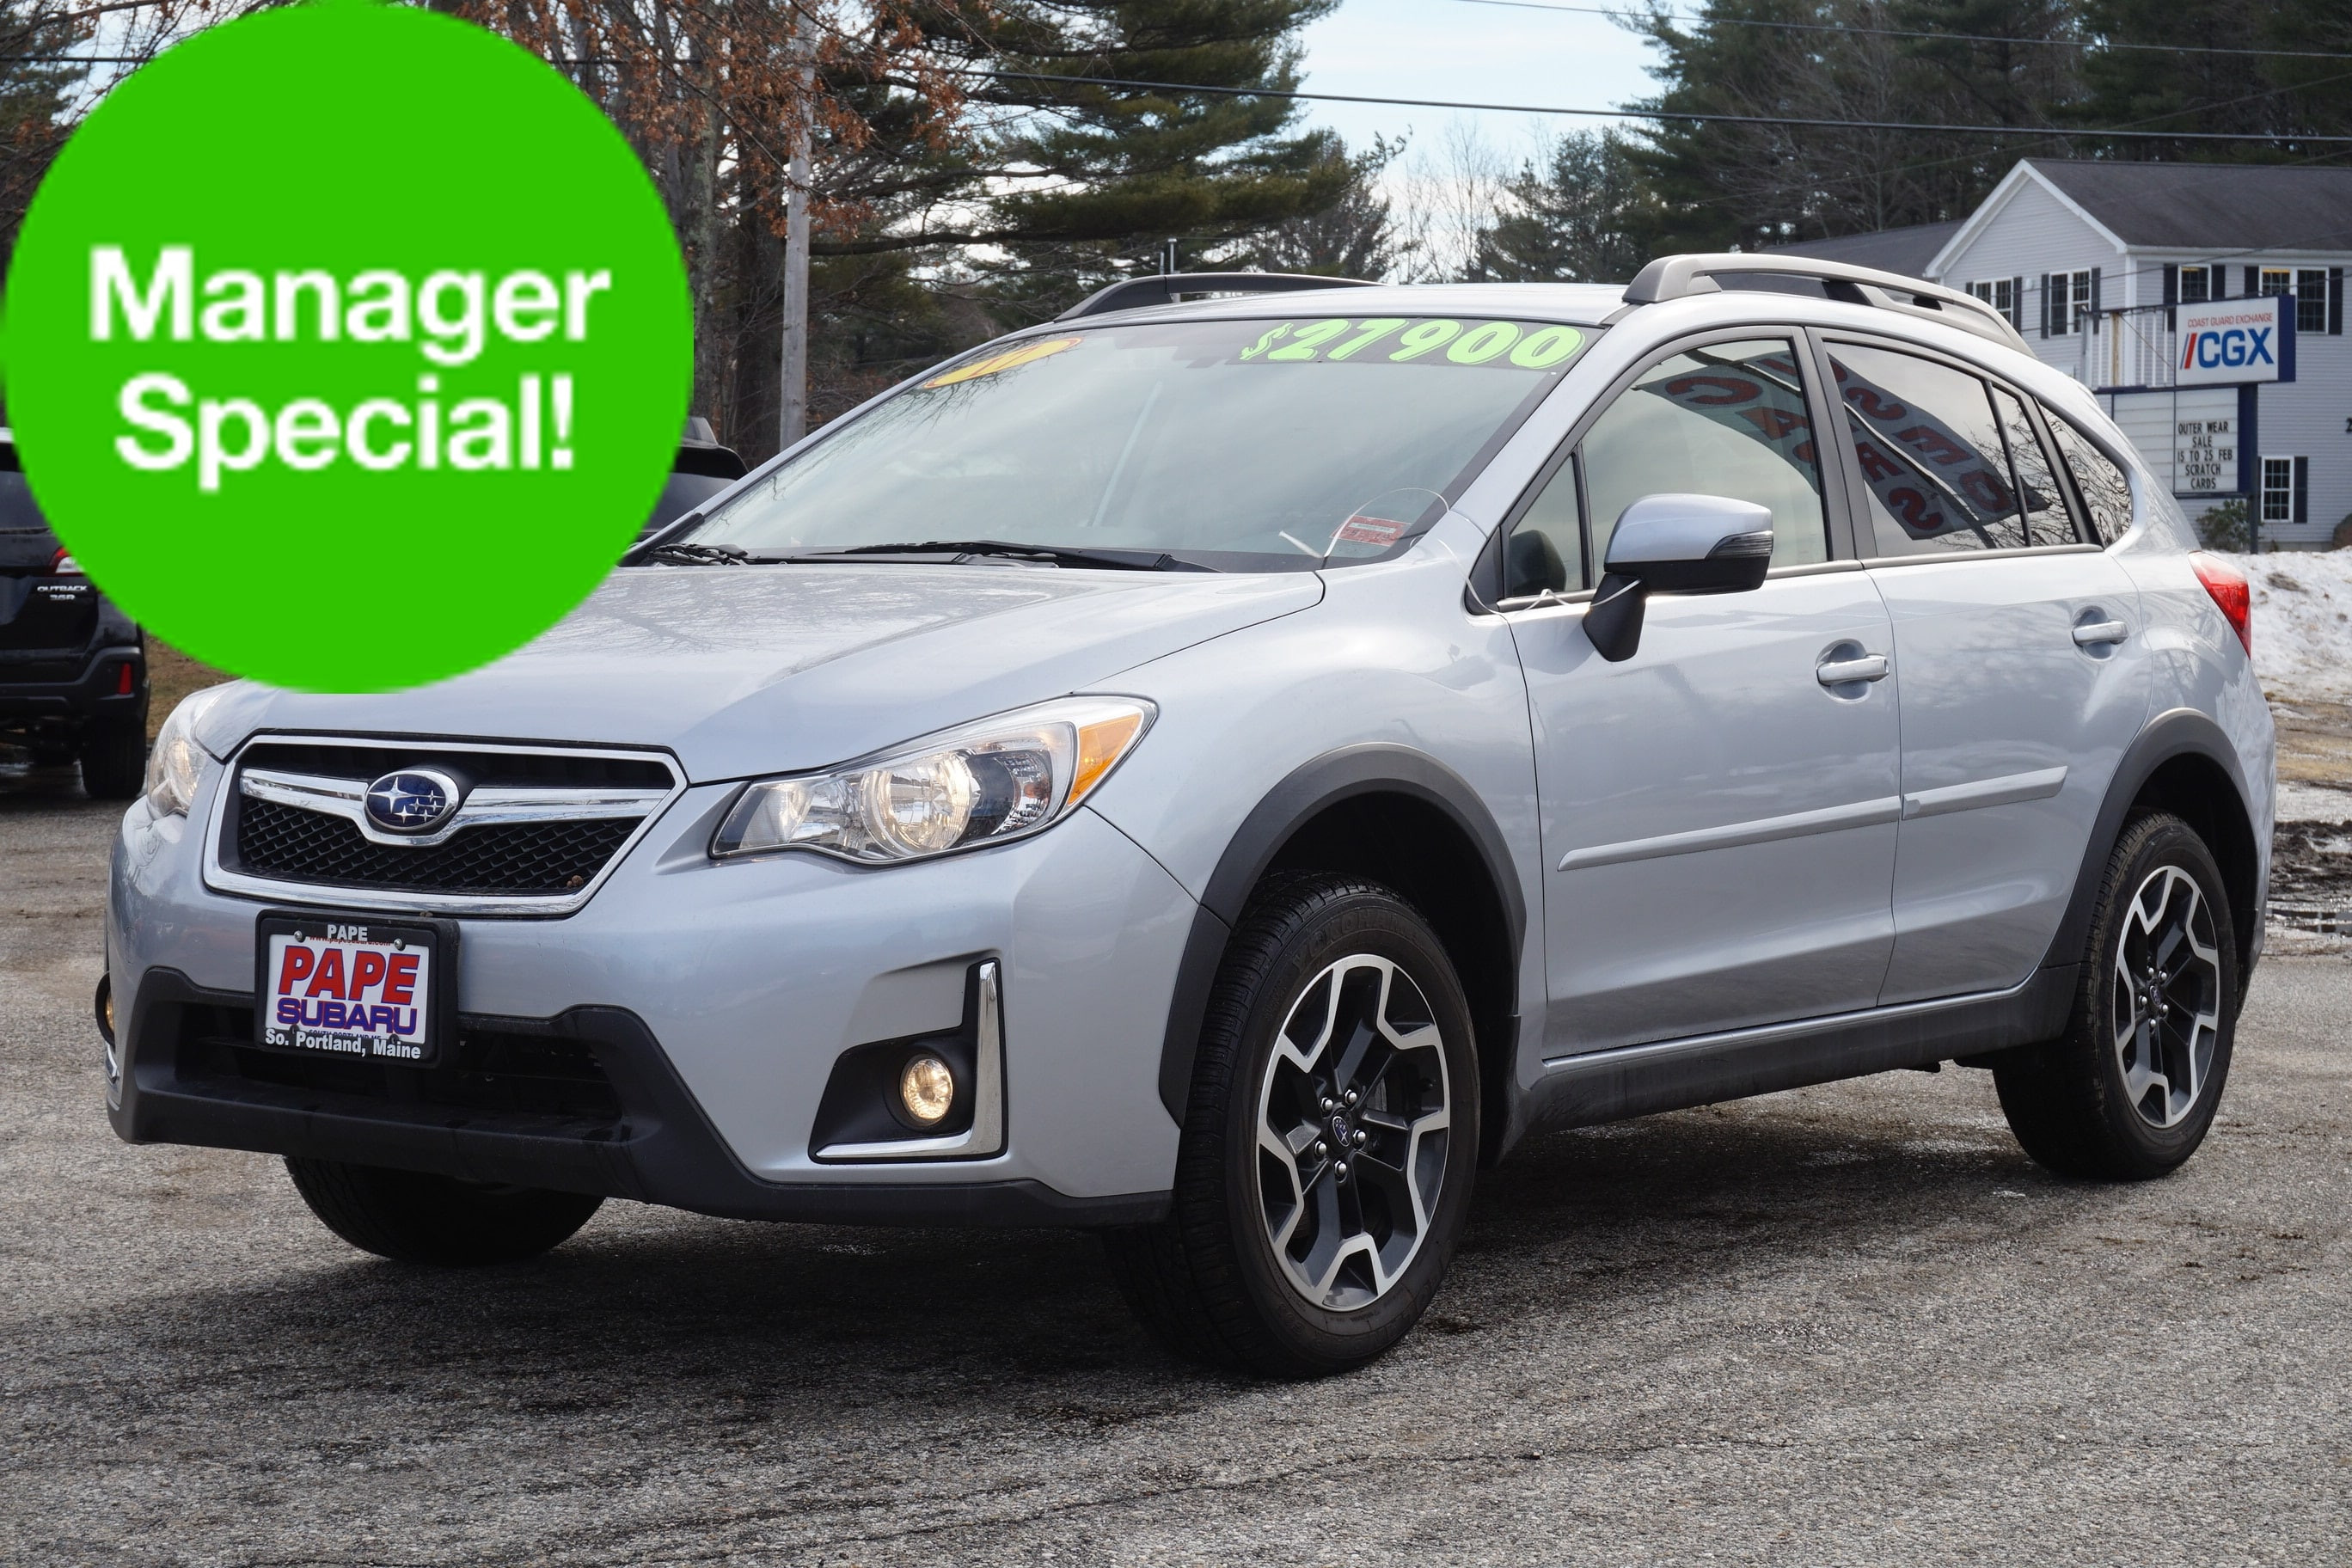 used cars near me under 2000 fresh cars for sale near me